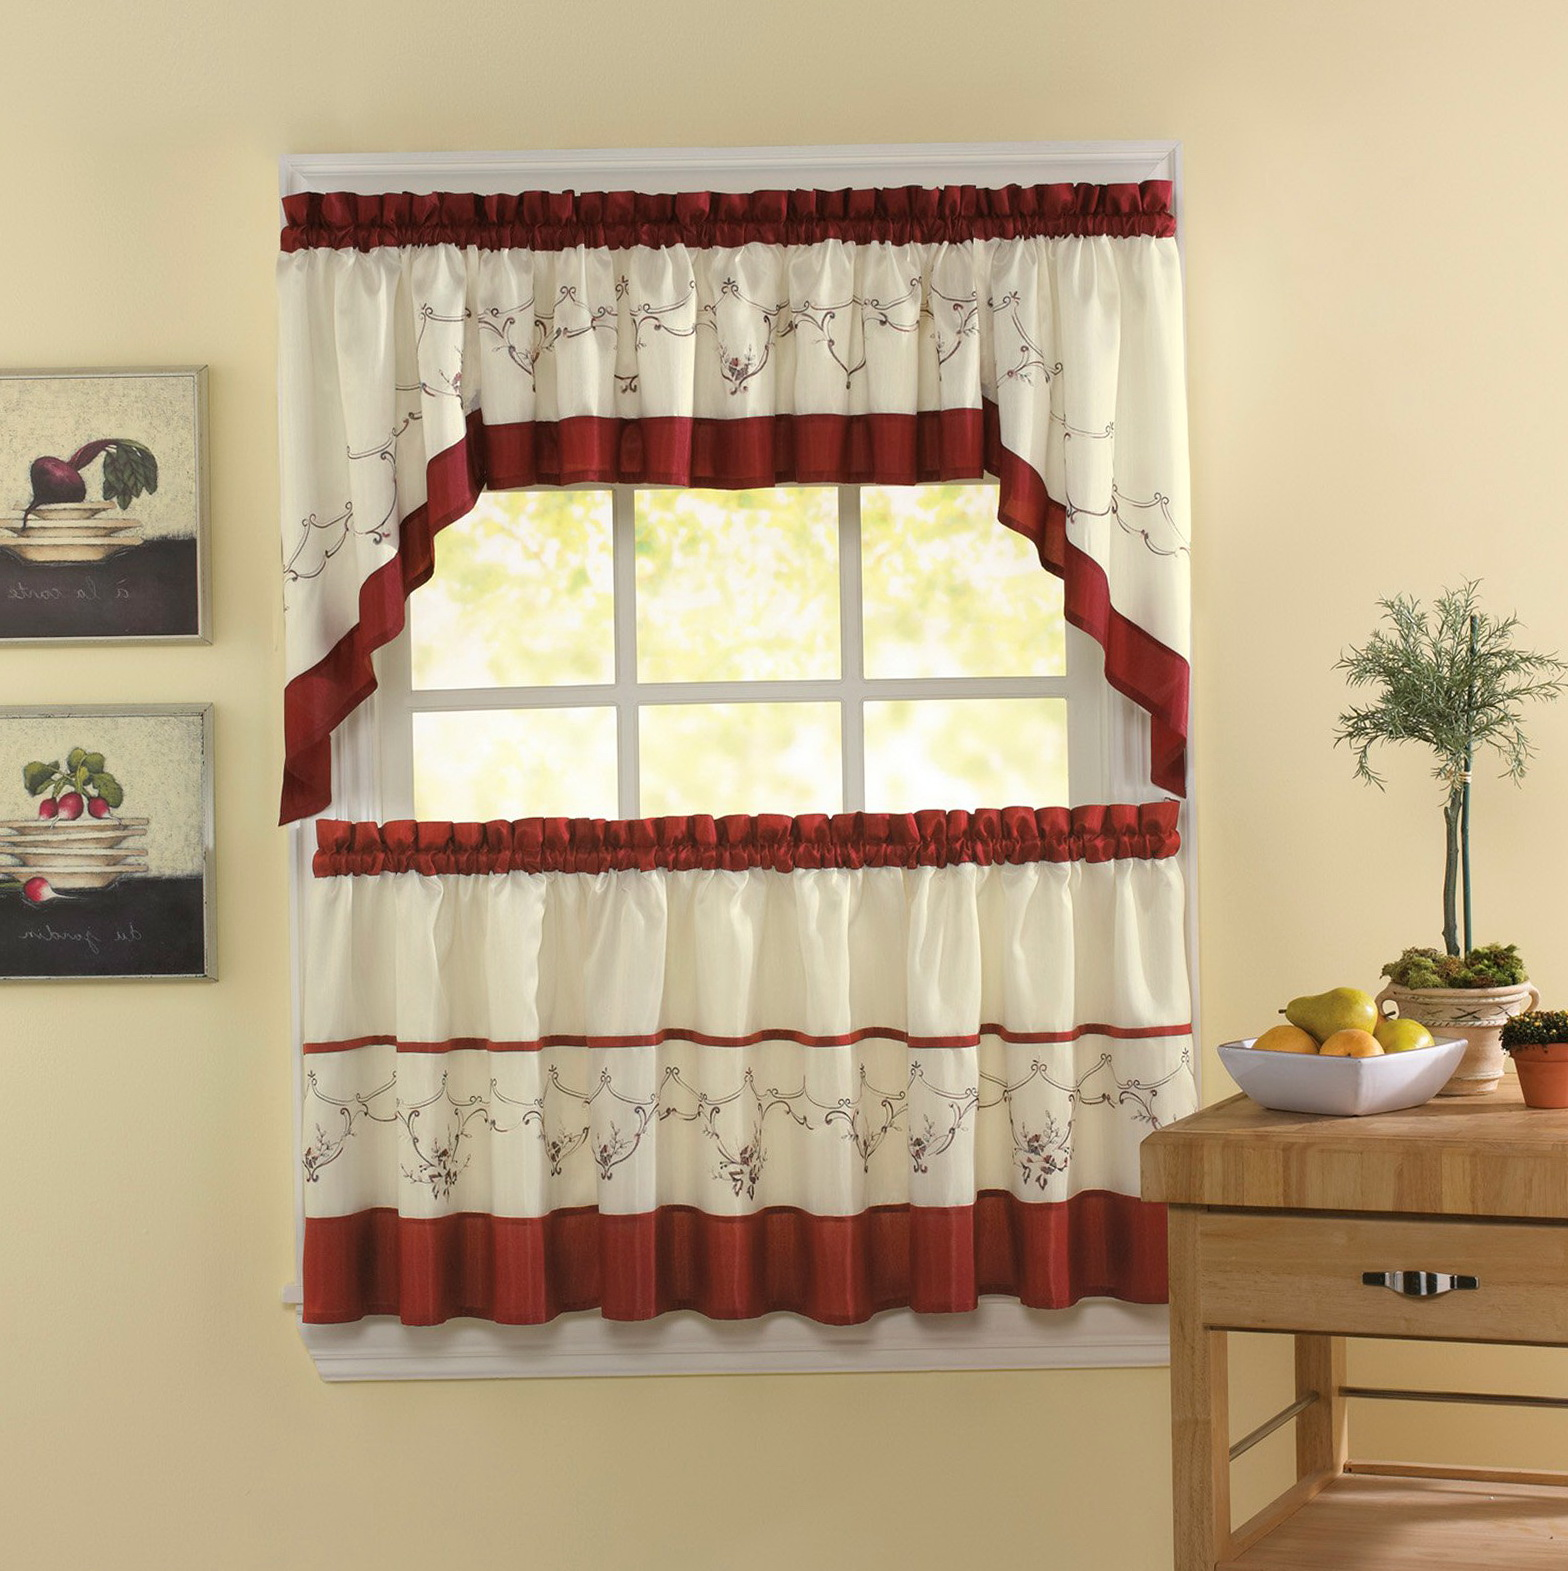 Kitchen Tier Curtains Walmart Home Design Ideas